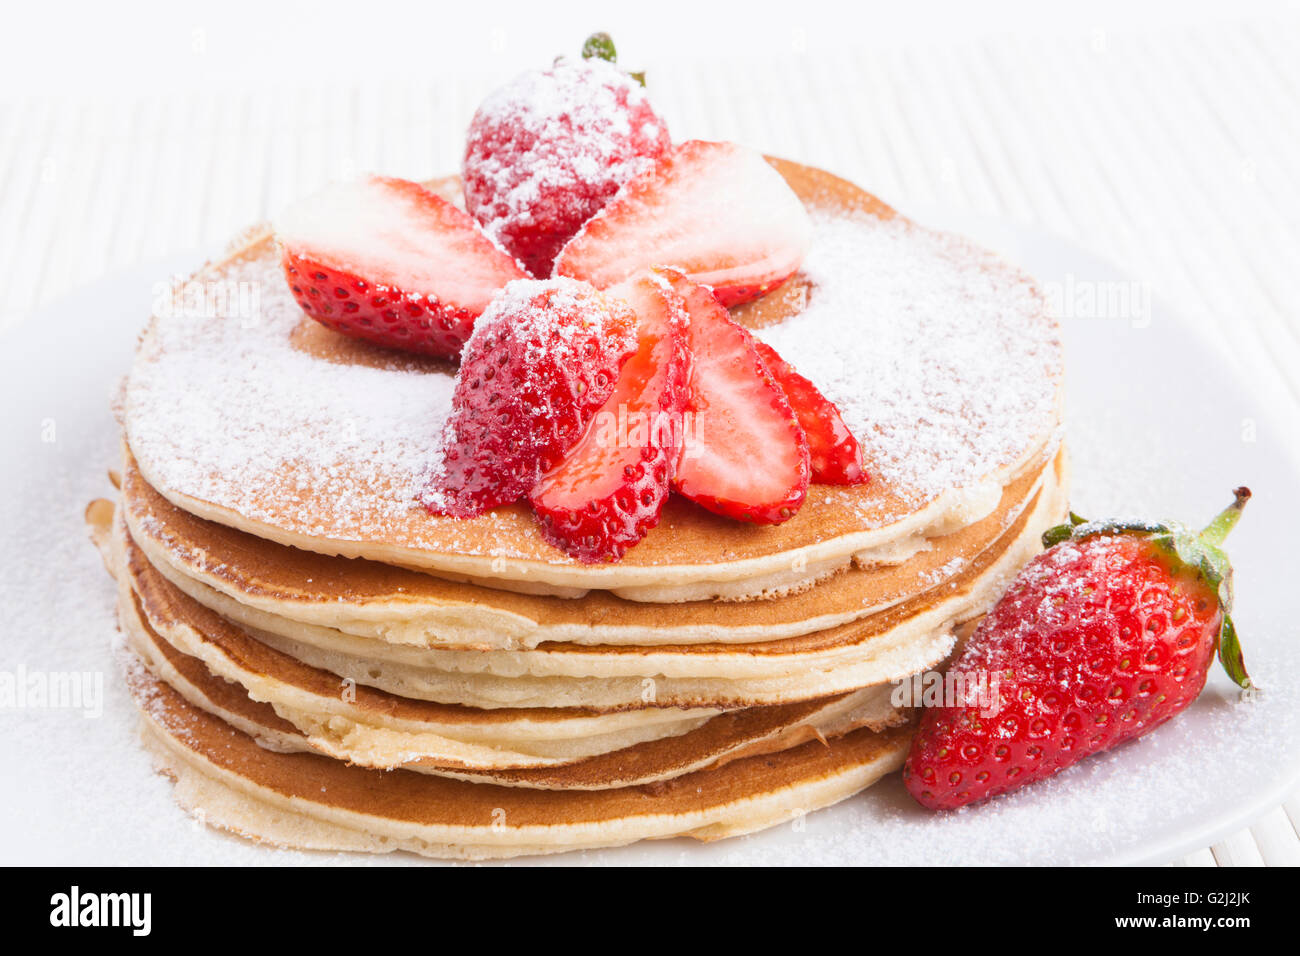 Pancakes on white background with  strawberry and sugar - Stock Image